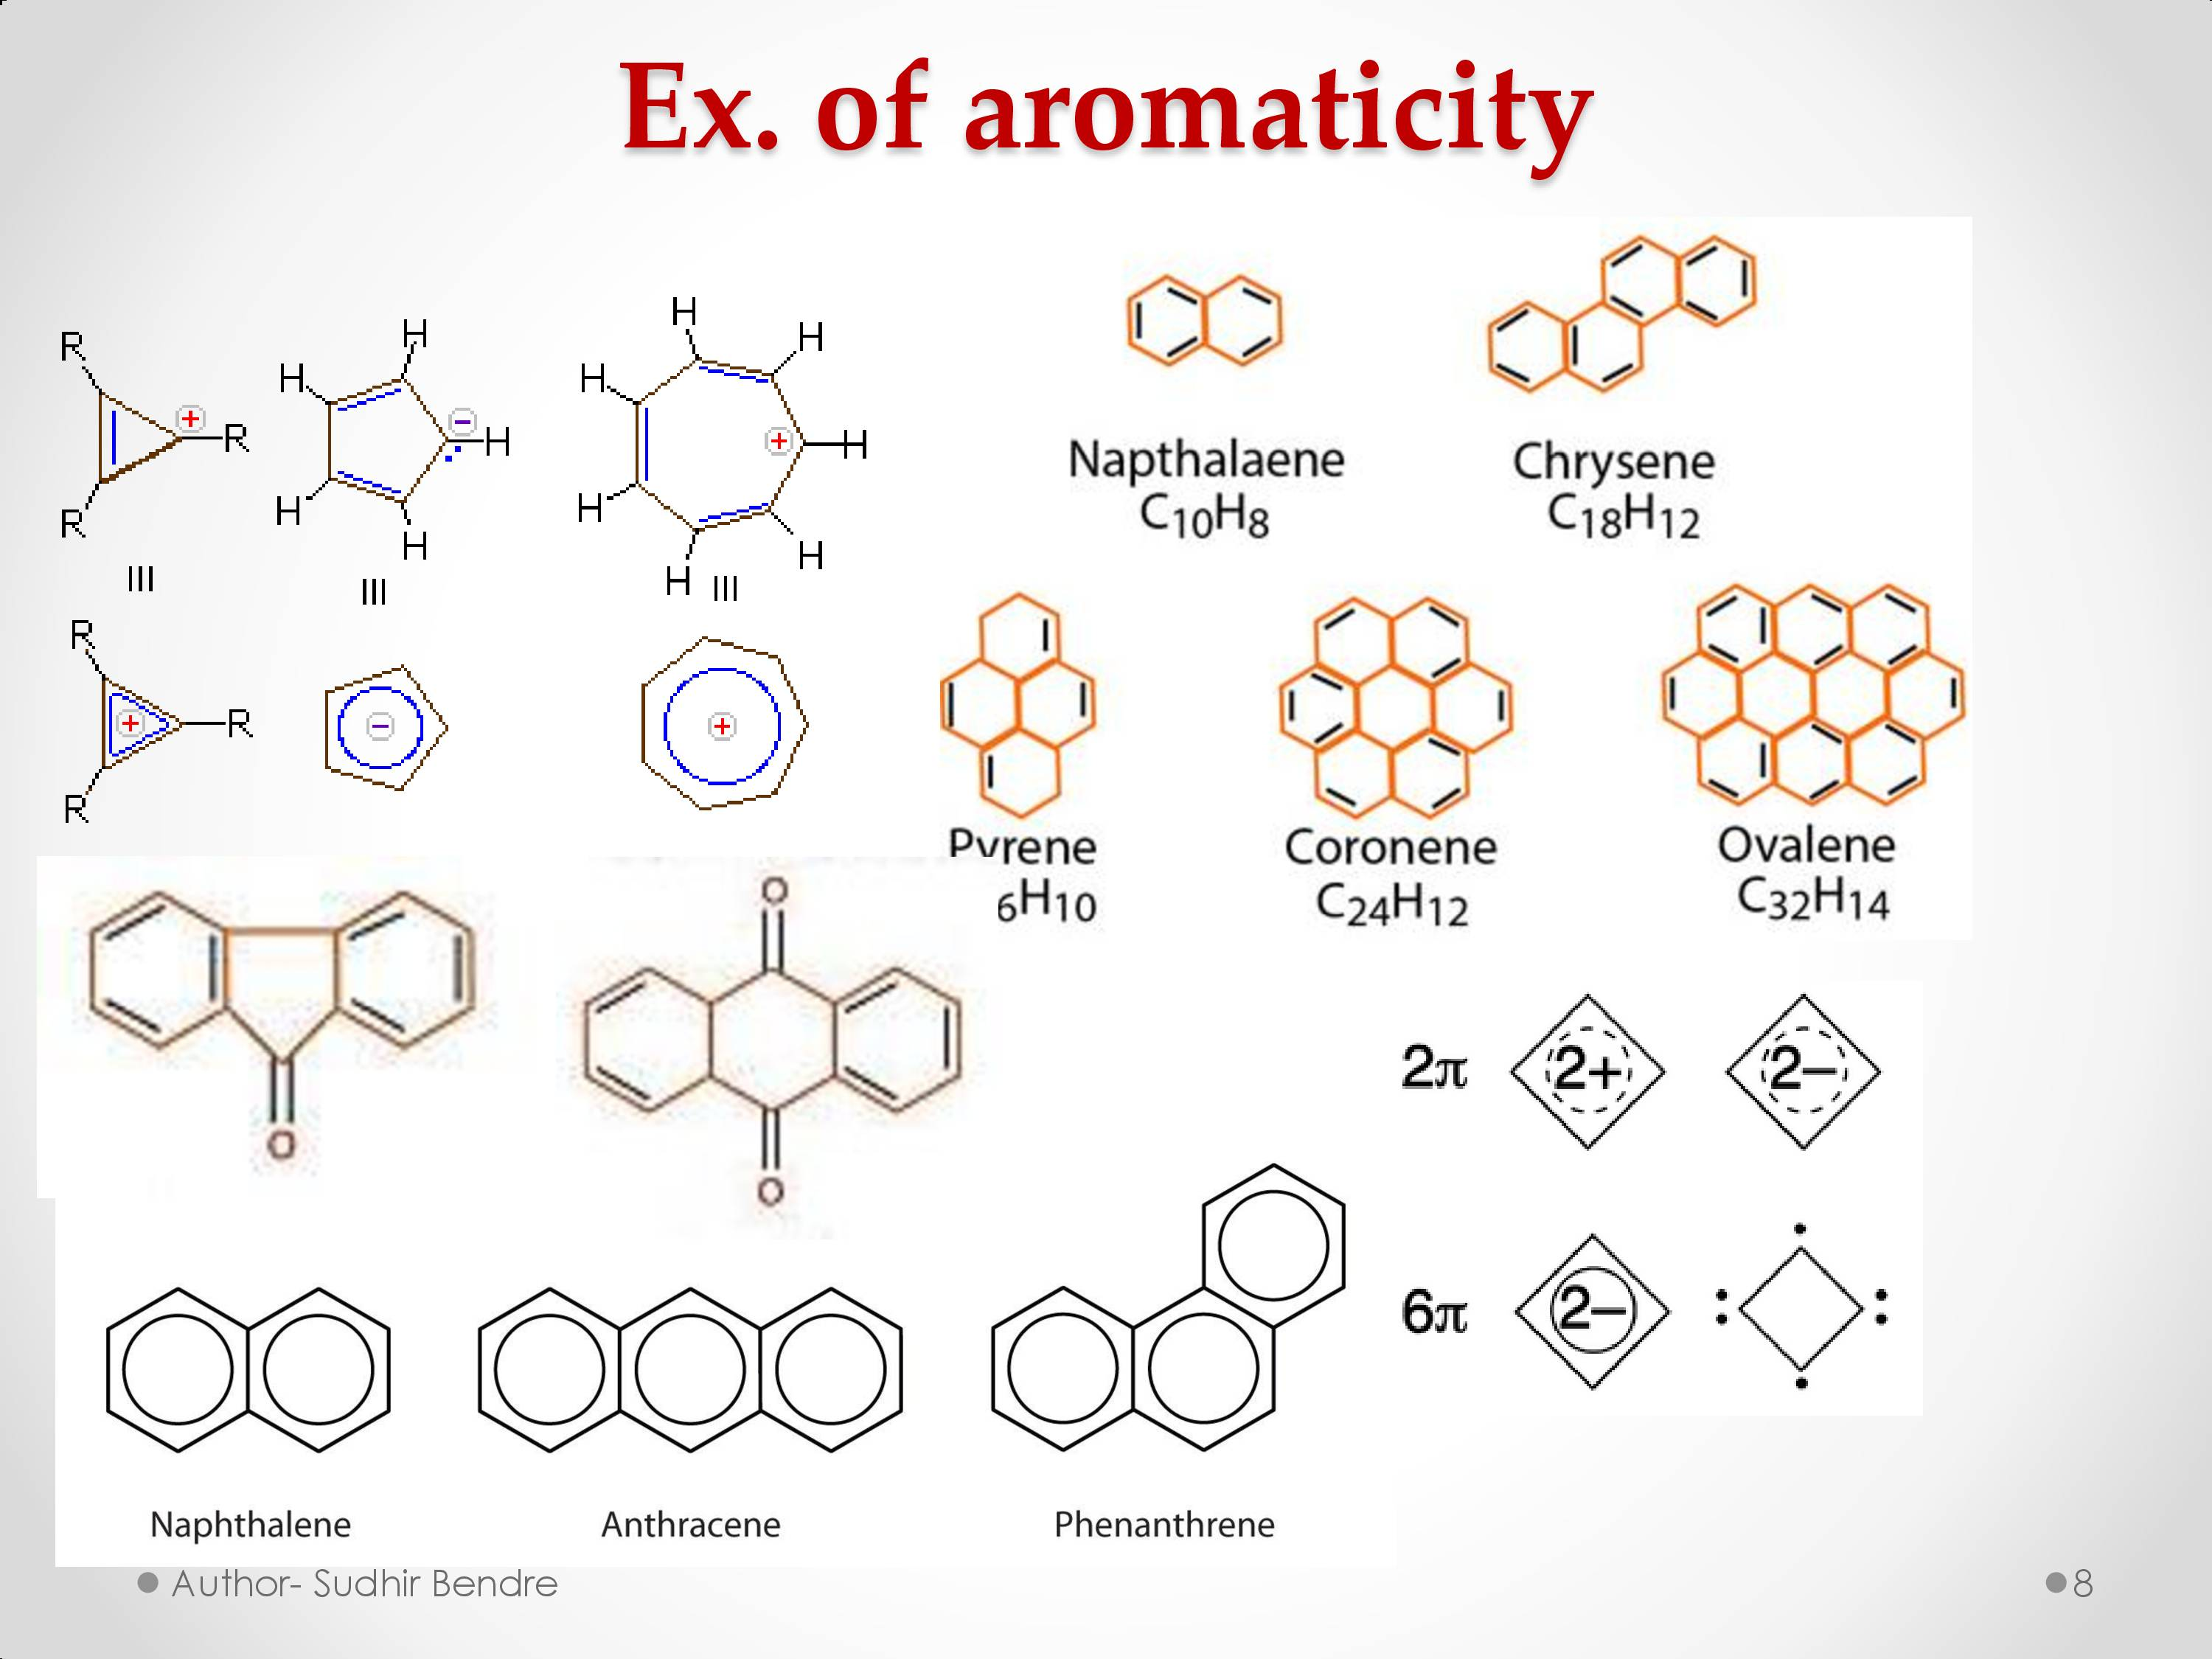 This is the image which is related to Aromaticity